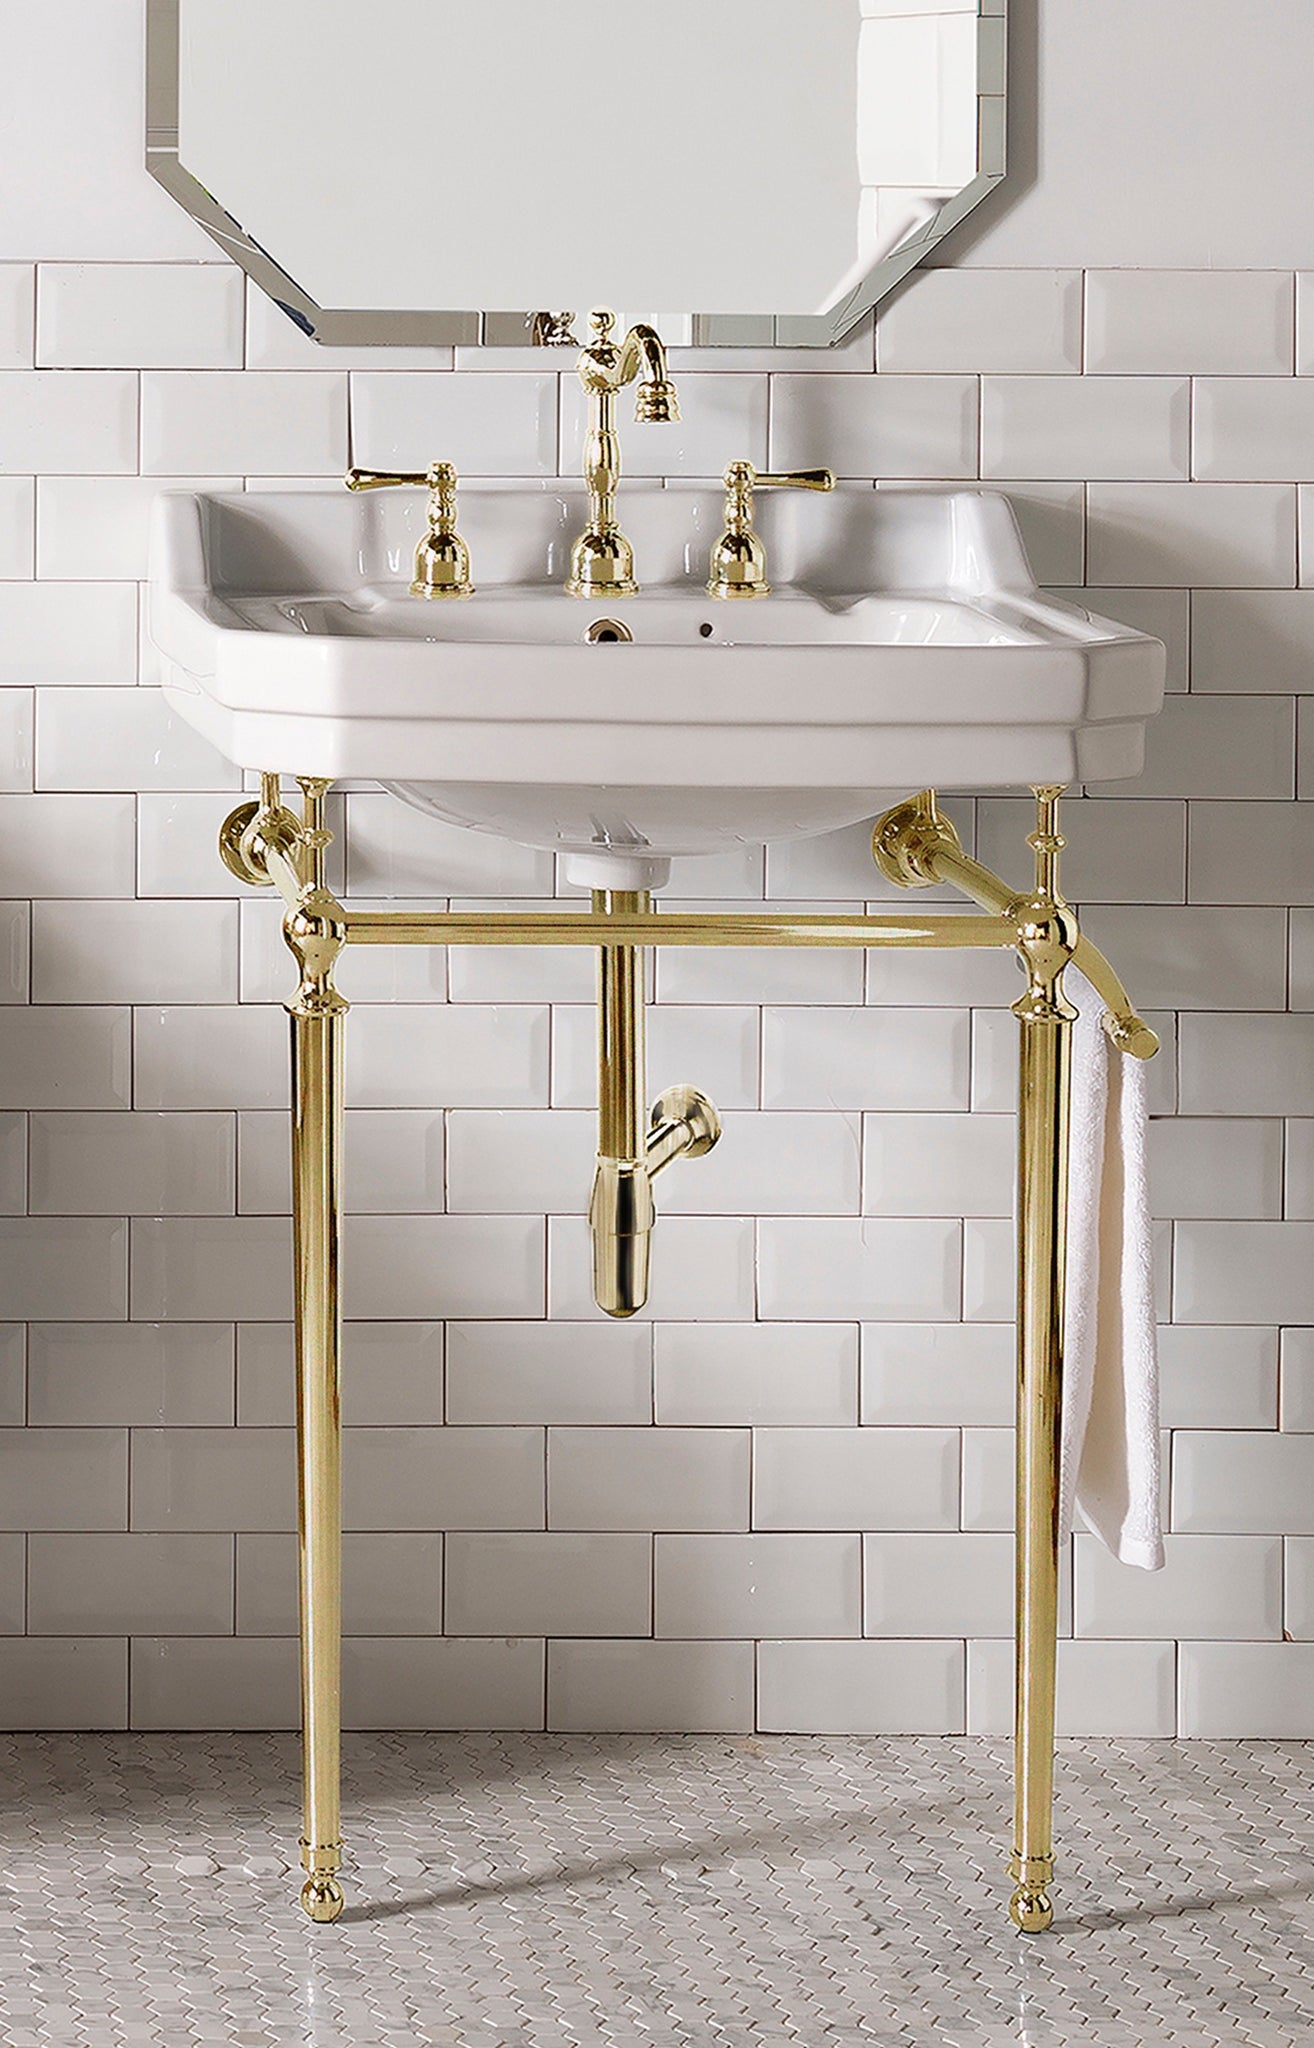 "Wellington 24"" Single Bathroom Vanity Brass Finish Single Bathroom Vanity James Martin Vanities"